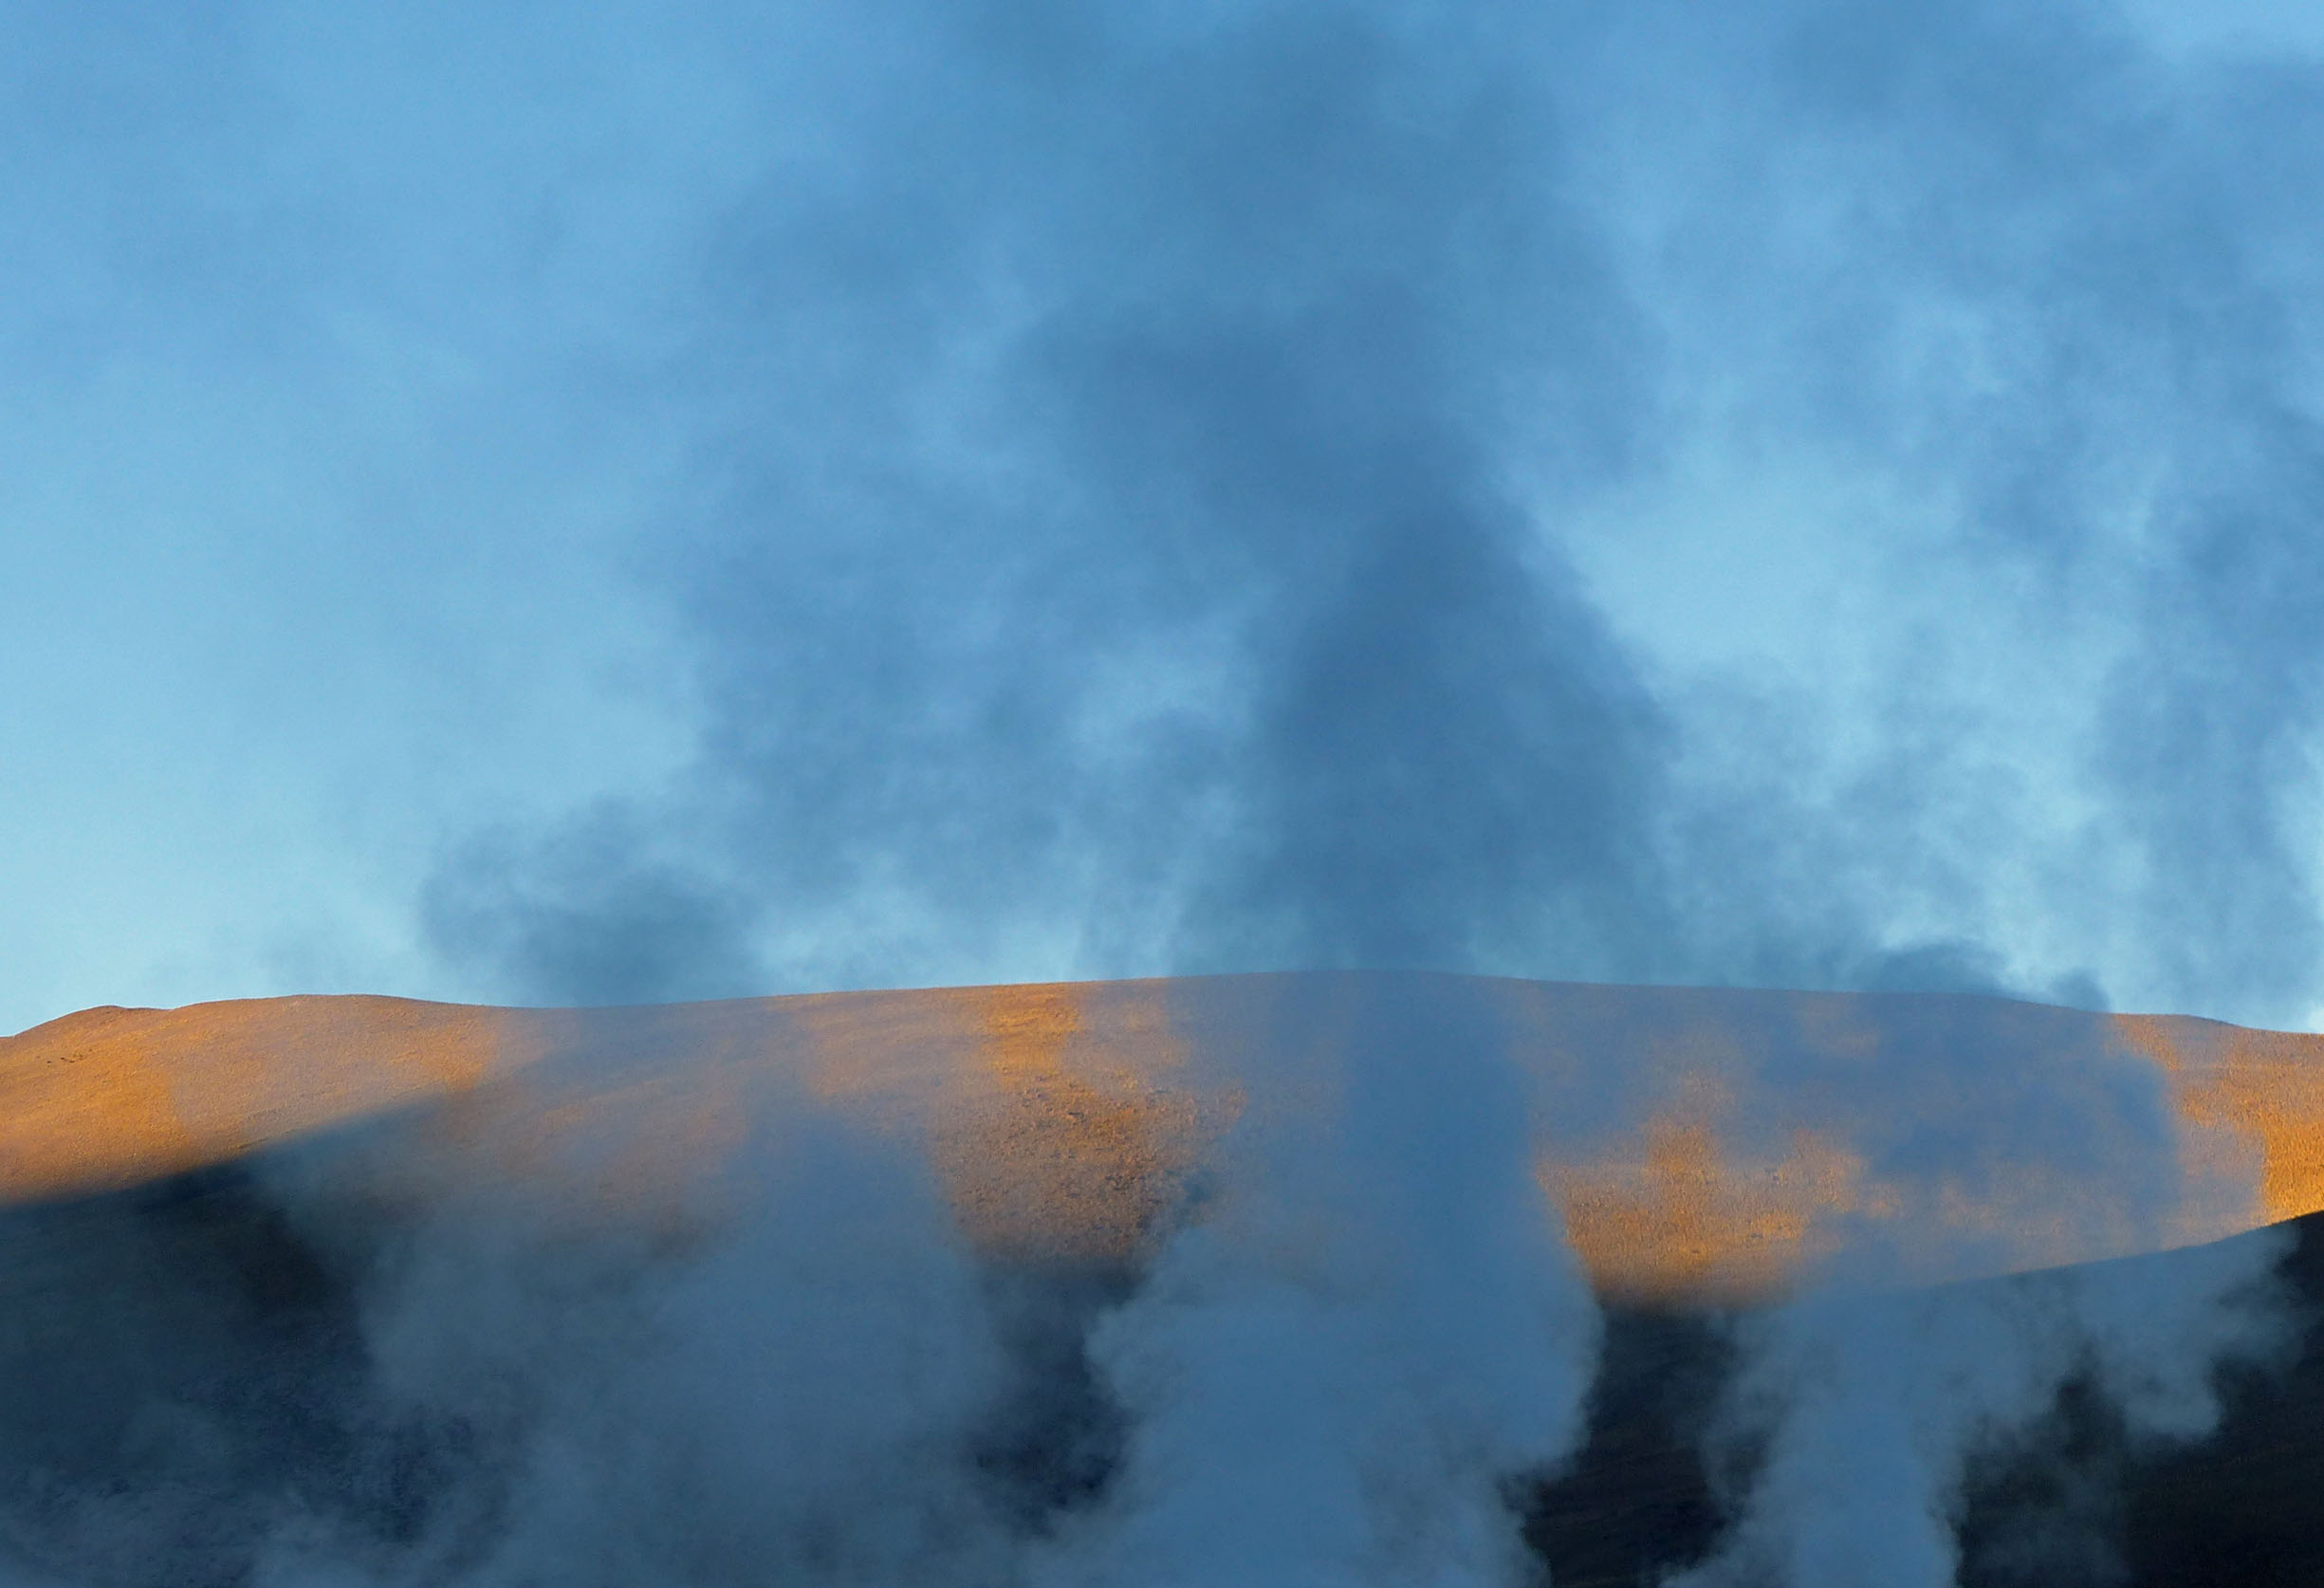 Steam rising from a geyser with sun catching hill behind